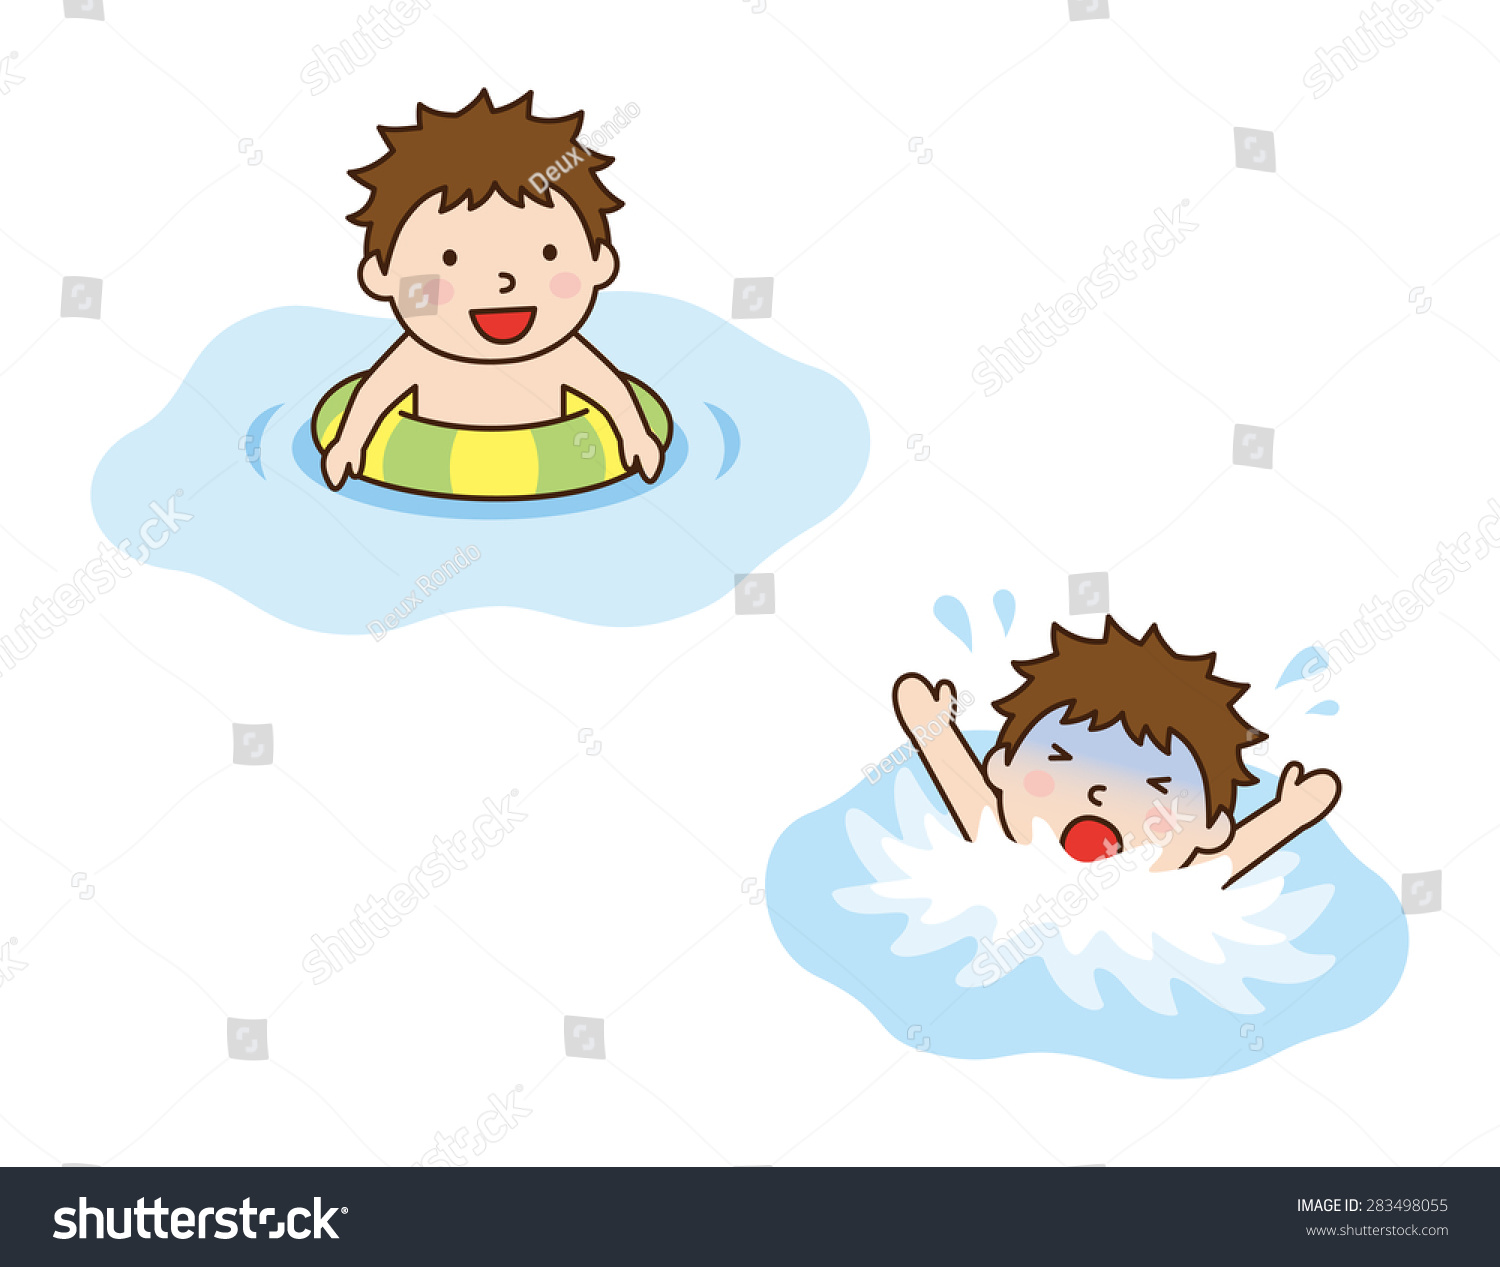 100+ Free Drowning & Under Water Images - Pixabay